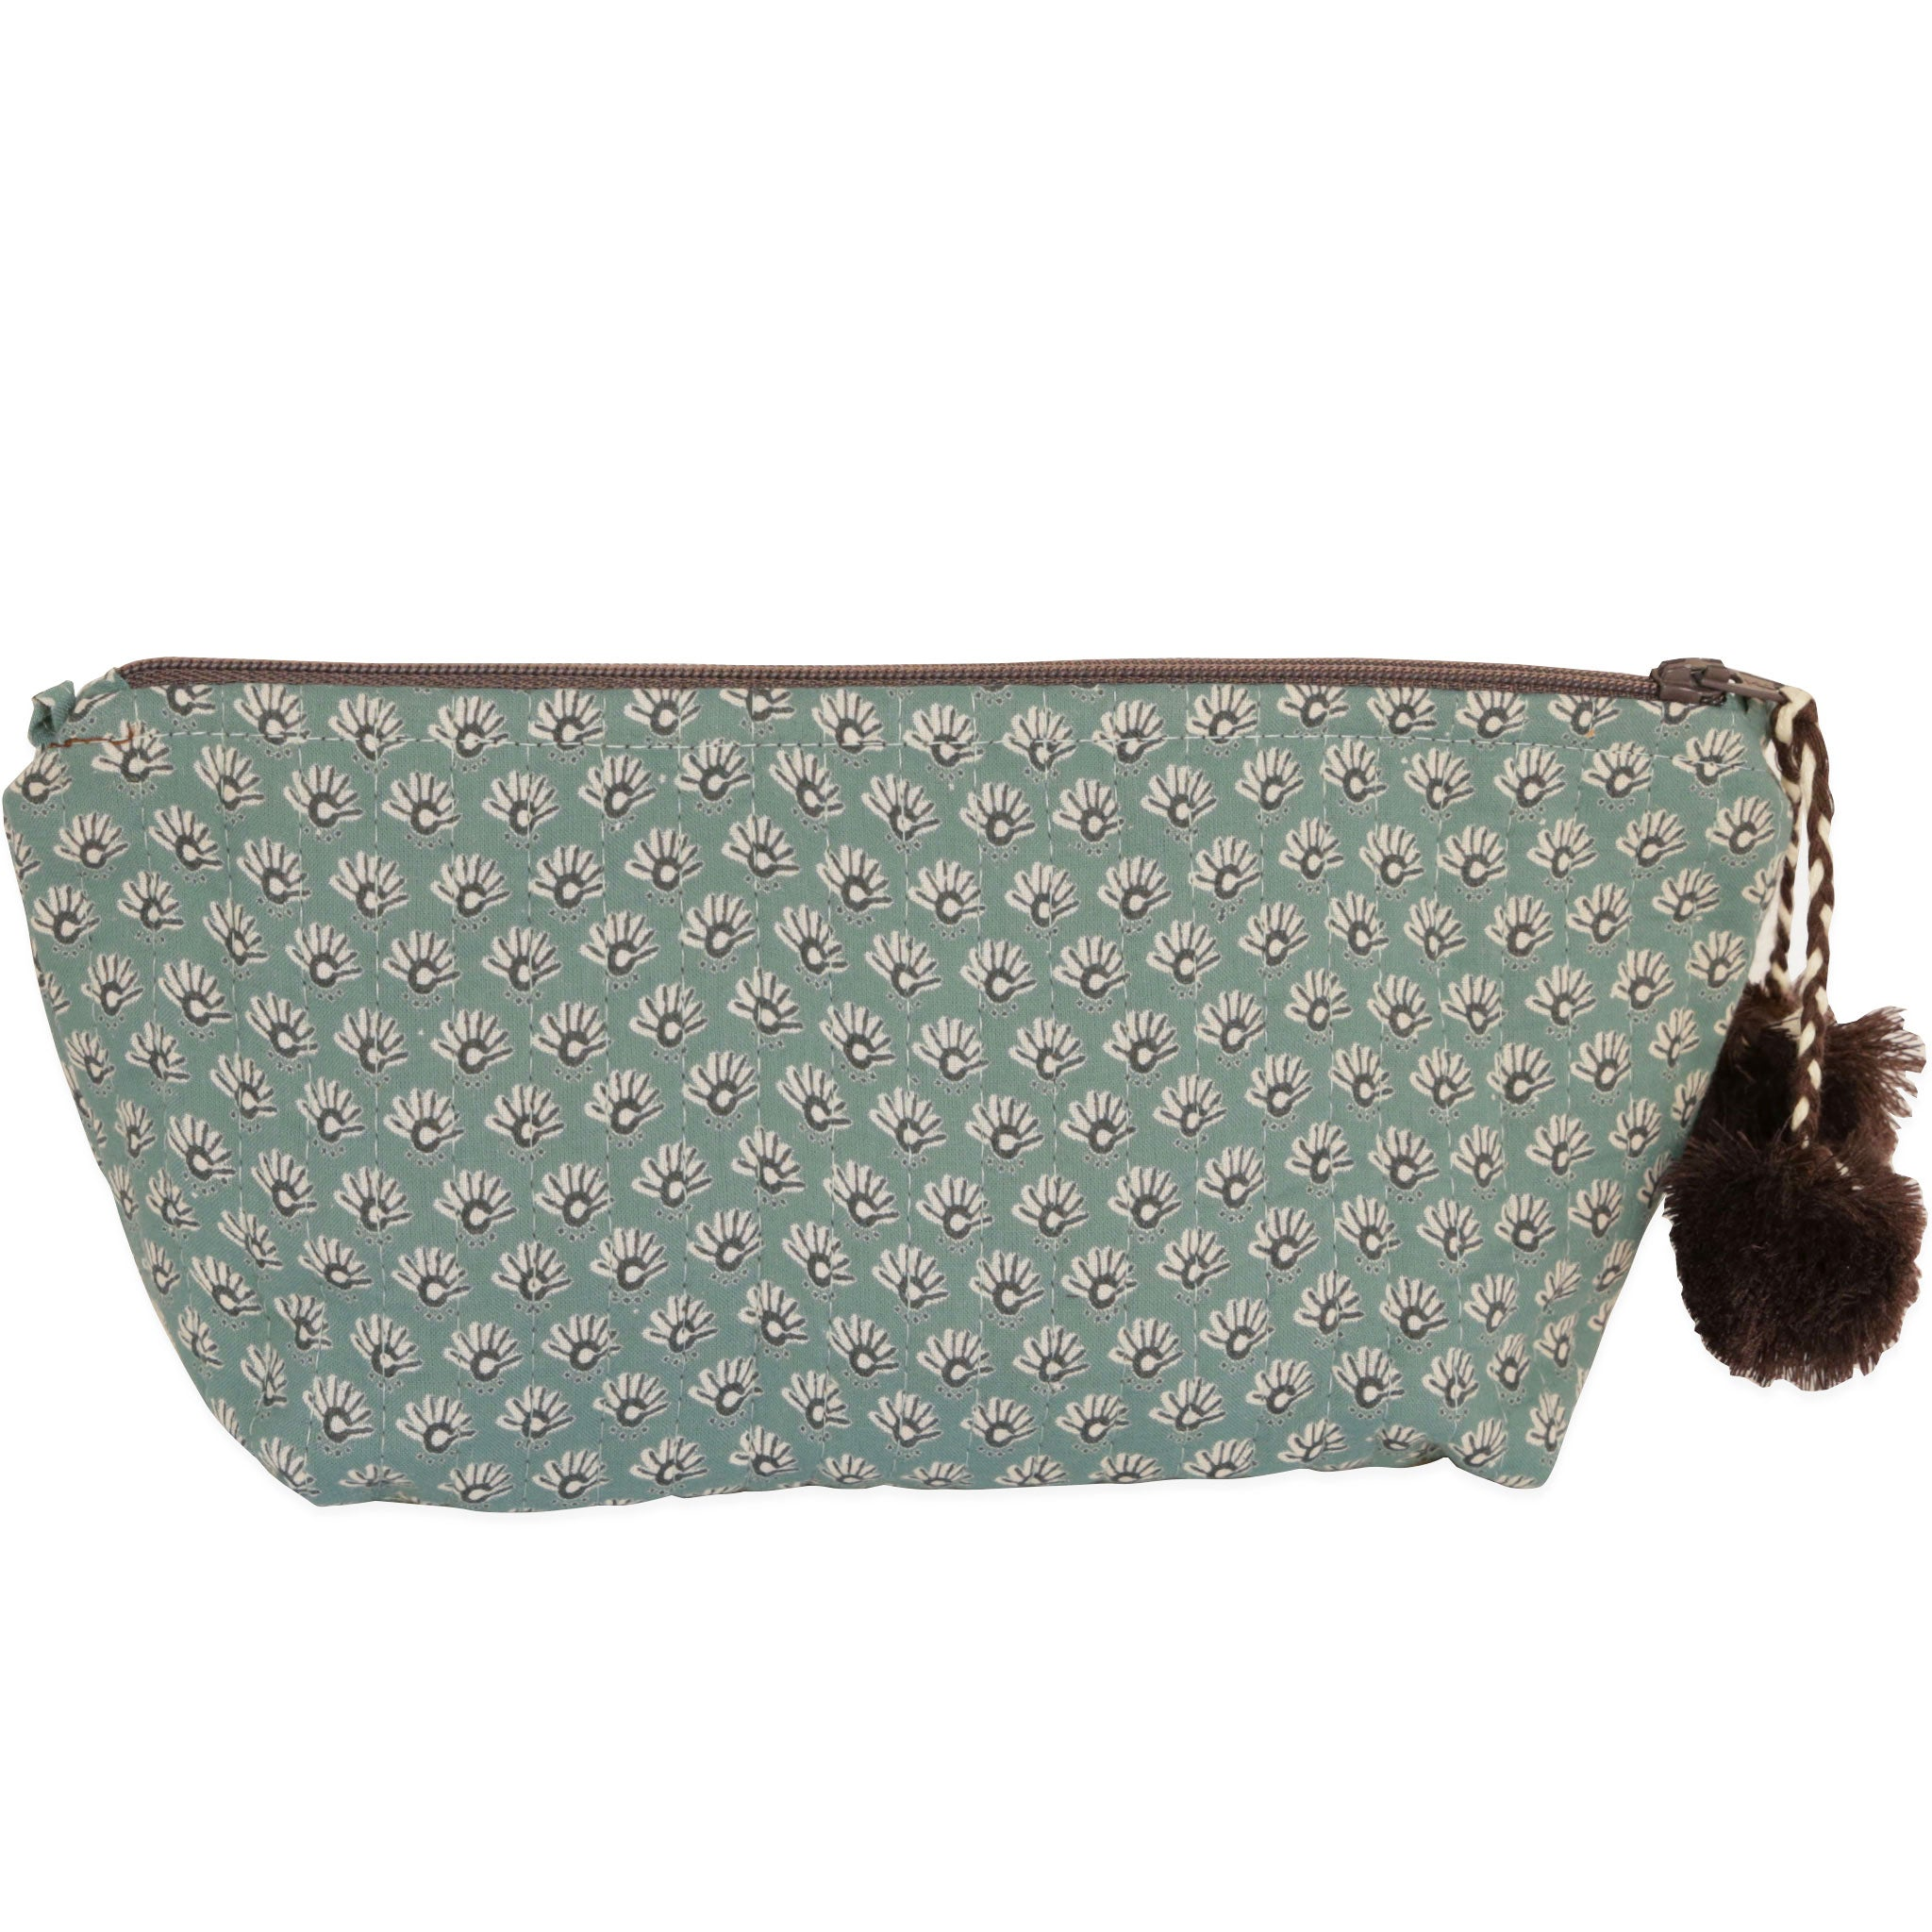 Celeste Sea Foam Block Printed Makeup Pouch